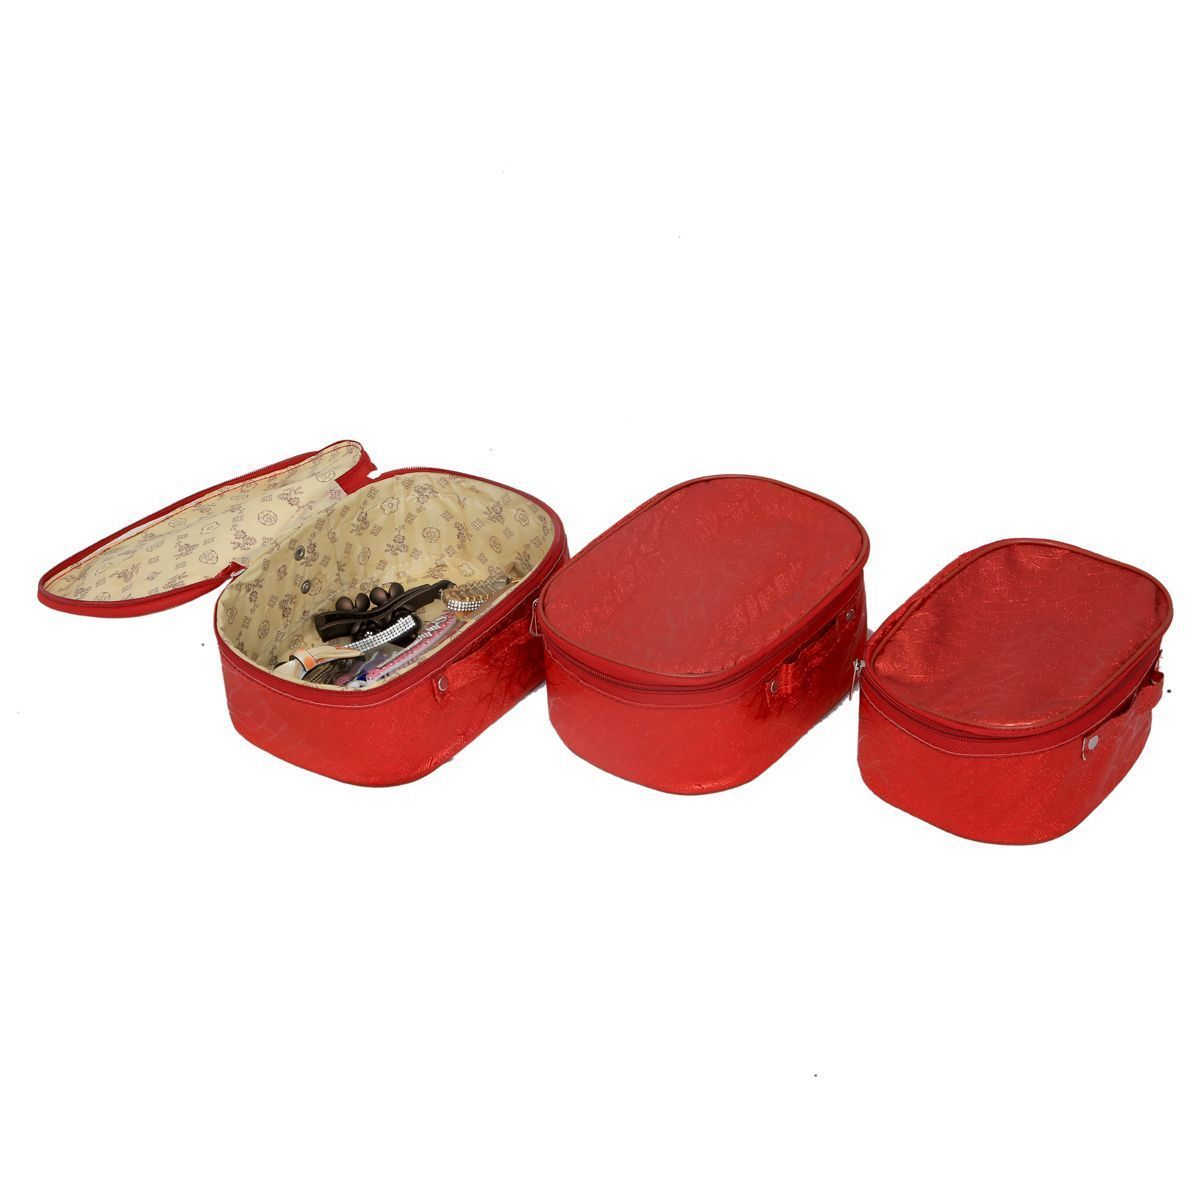 """Kuber Industriesâ""¢ Make Up kit,Travelling Kit,Cosmetic Organiser,Multi Purpose Kit Set of 3 Pcs Waterproof (Red) KI19439 """